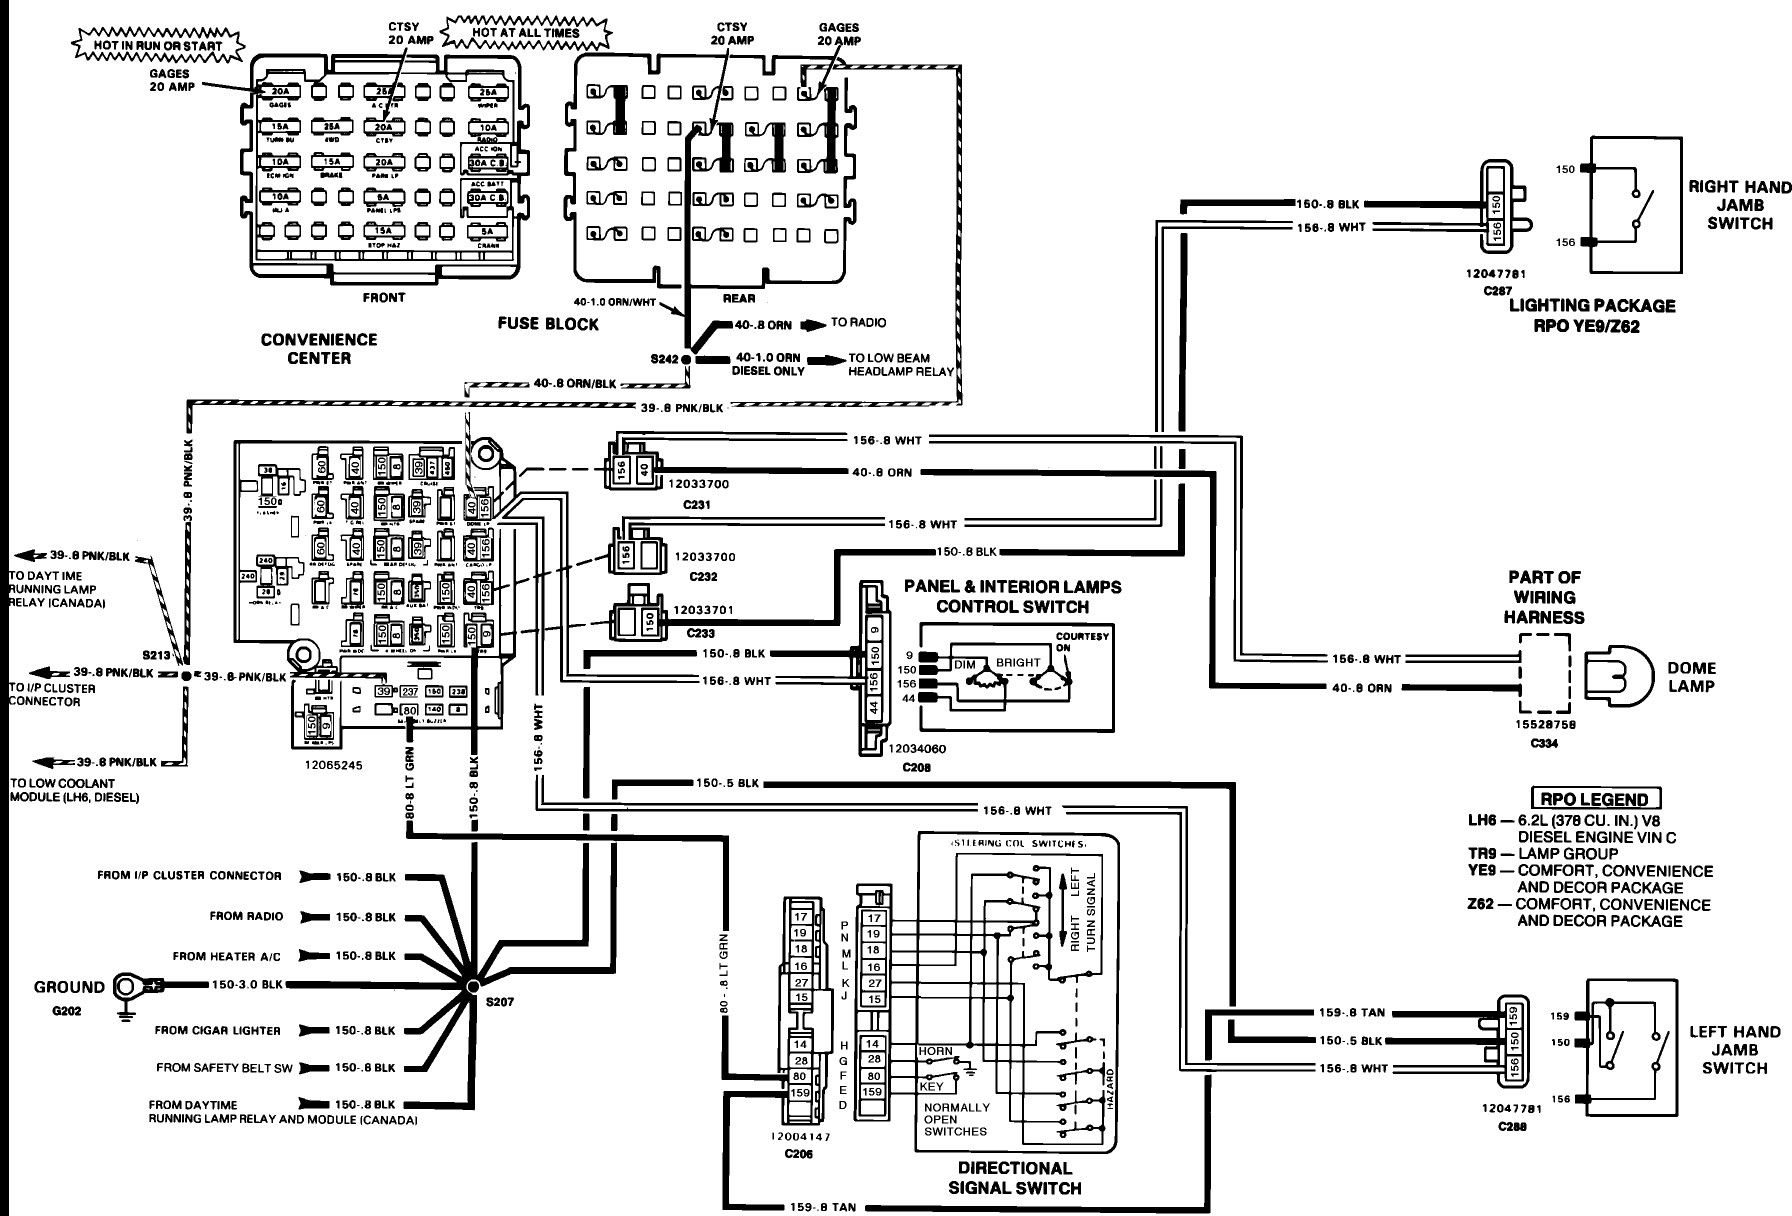 1997 chevy truck wiring harness wiring diagram sort 1997 chevy truck wiring harness [ 1792 x 1216 Pixel ]